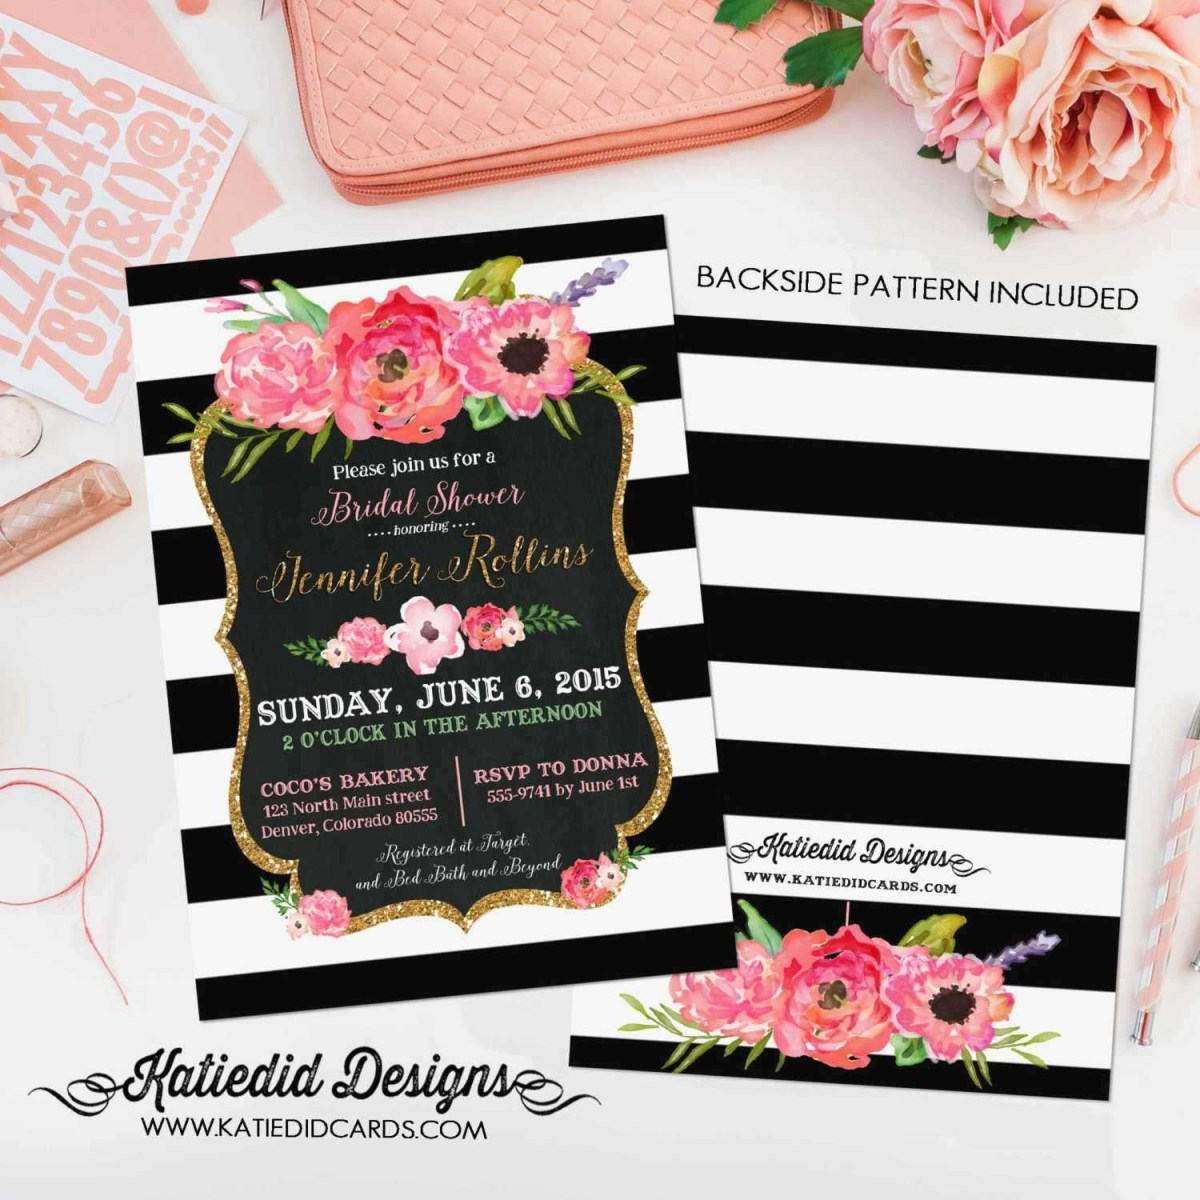 Wedding Invitations Under 1 Wedding Invitations Under 1 Wedding Invitations Under 1 Best